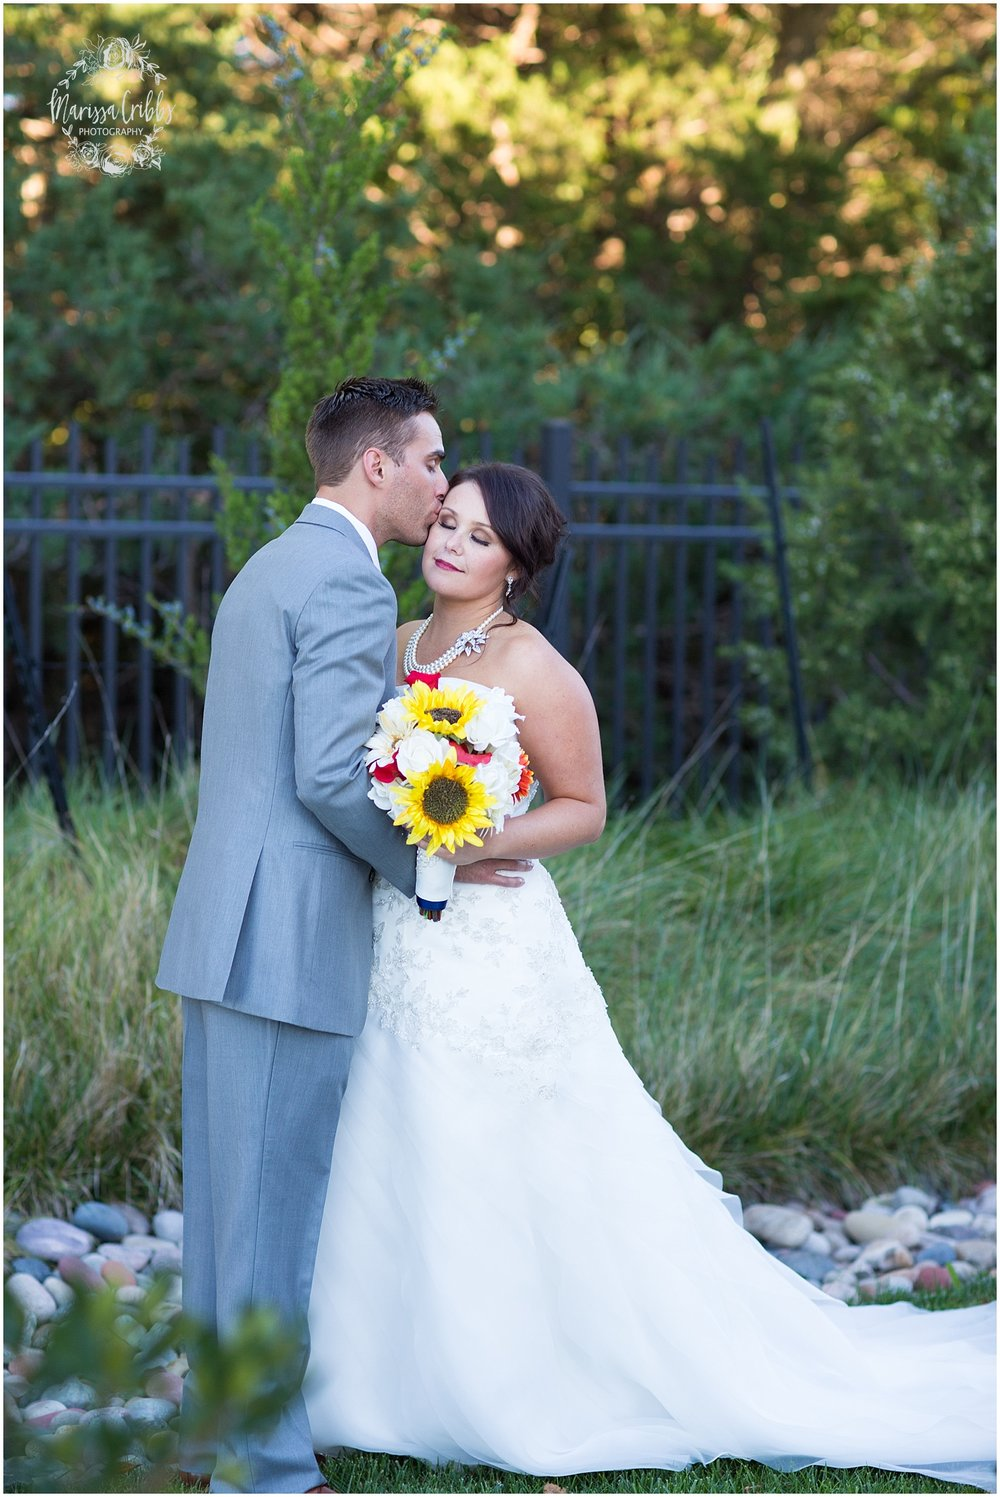 Sarah & Troy | Wichita KS Wedding Photography | Noah's Event Venue Wichita | Marissa Cribbs Photography_1011.jpg